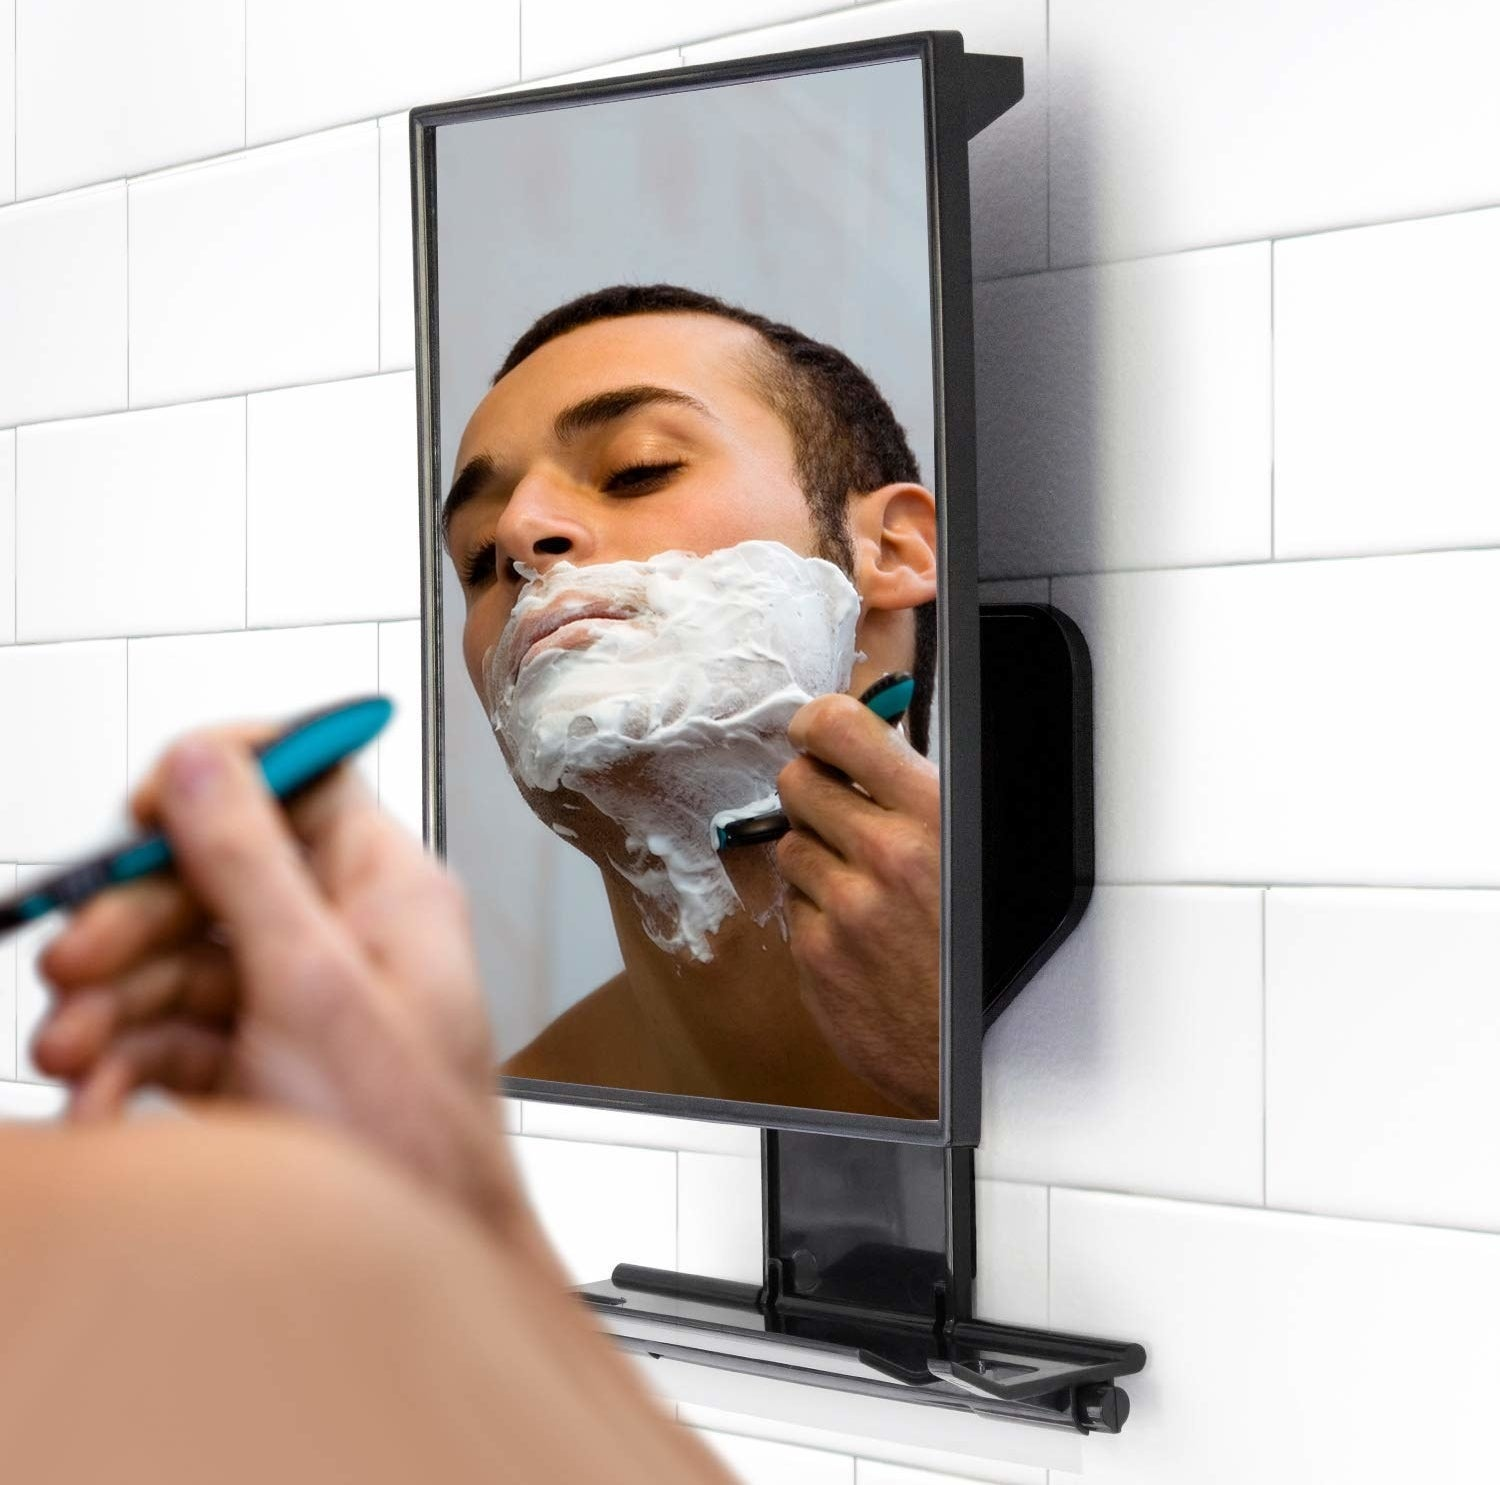 model shaving in mirror